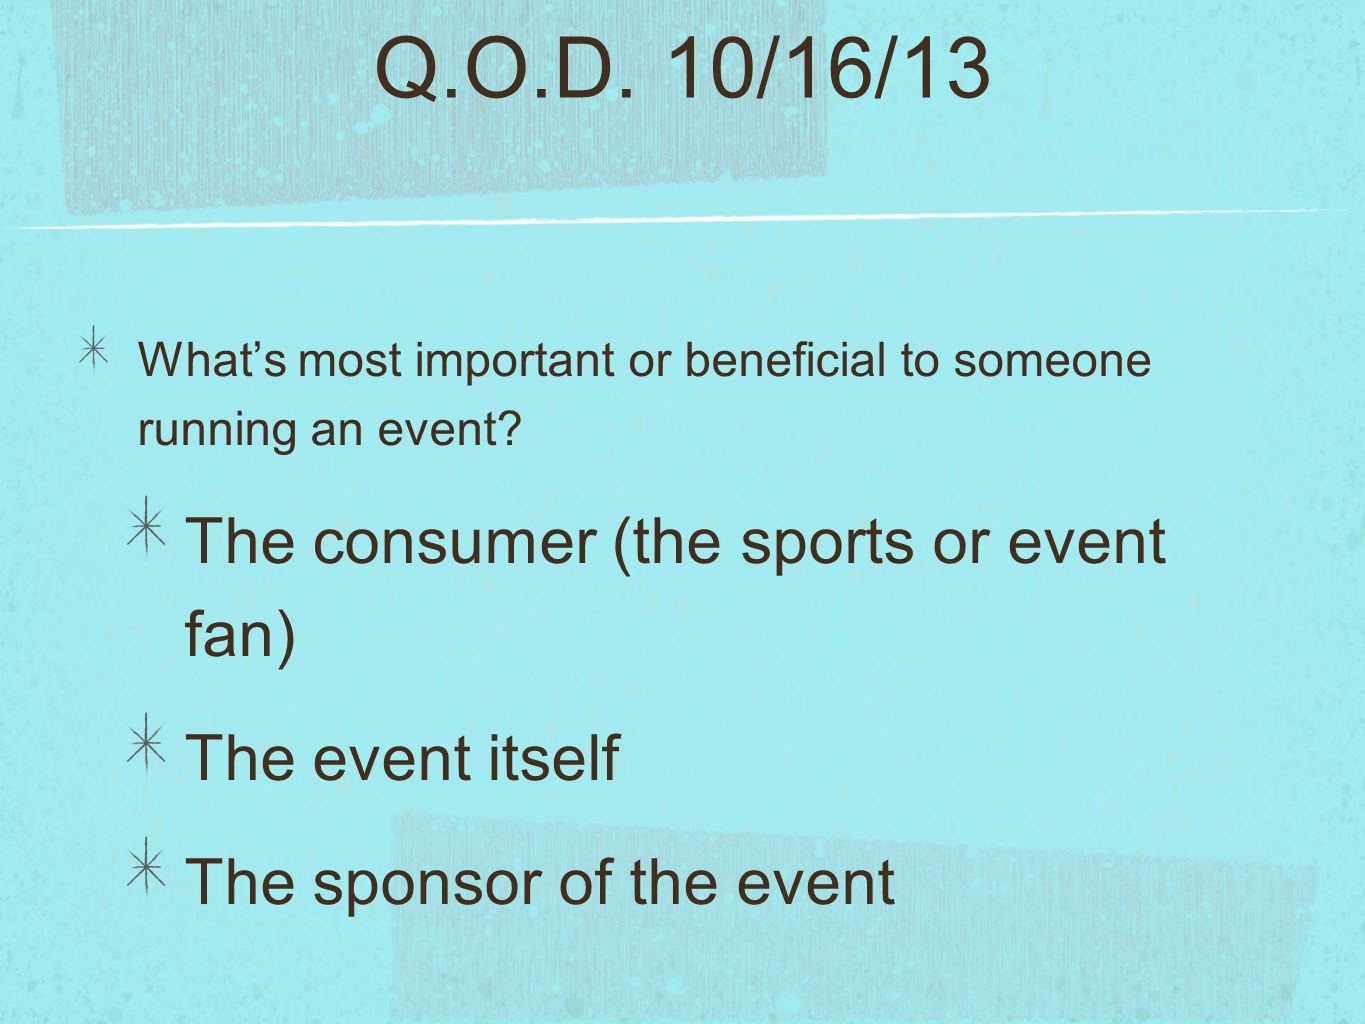 Q.O.D. 10/16/13 The consumer (the sports or event fan)